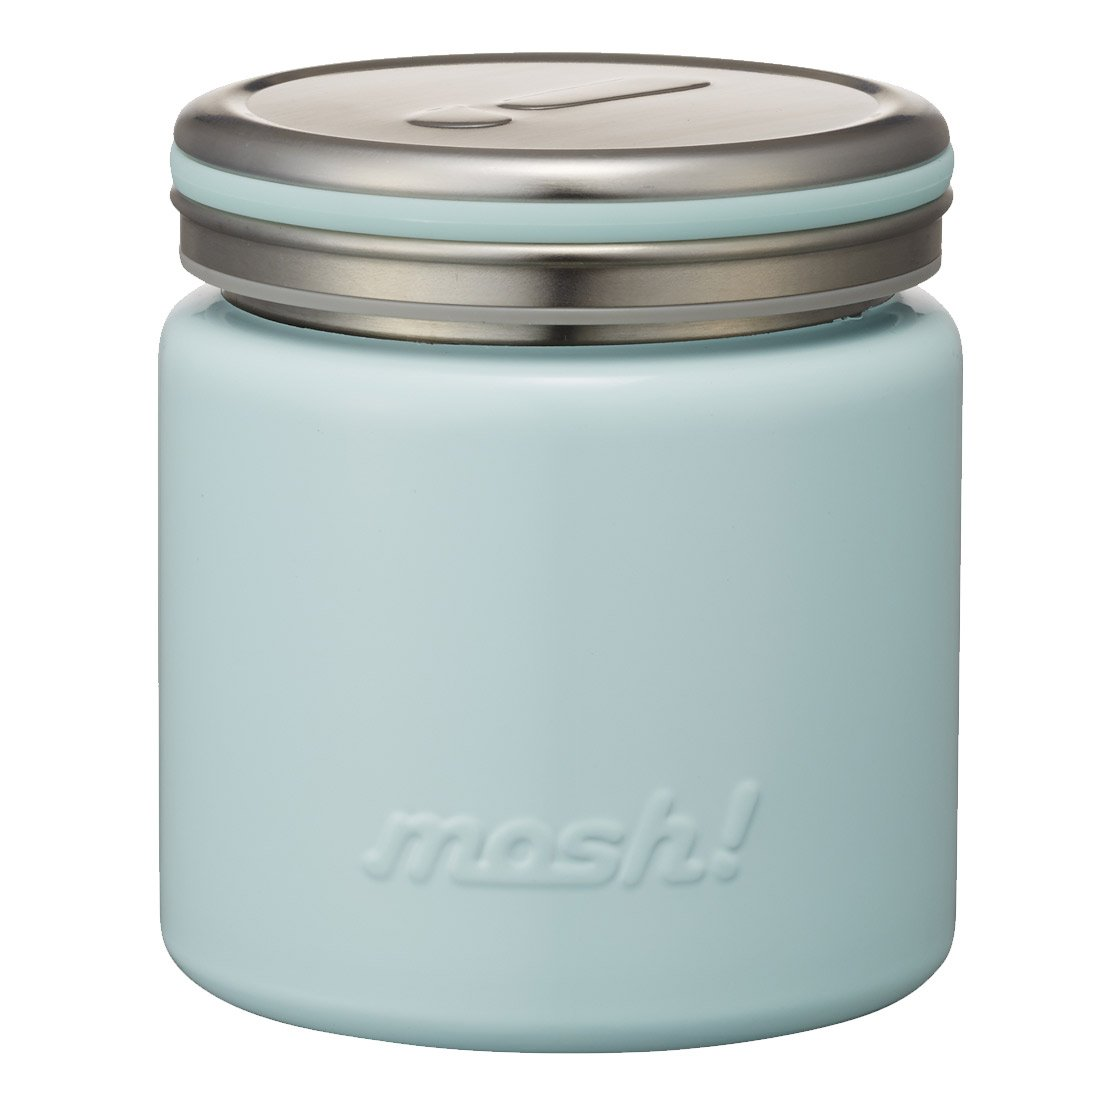 Mosh Stainless Steel Thermo Food Pot Light Blue